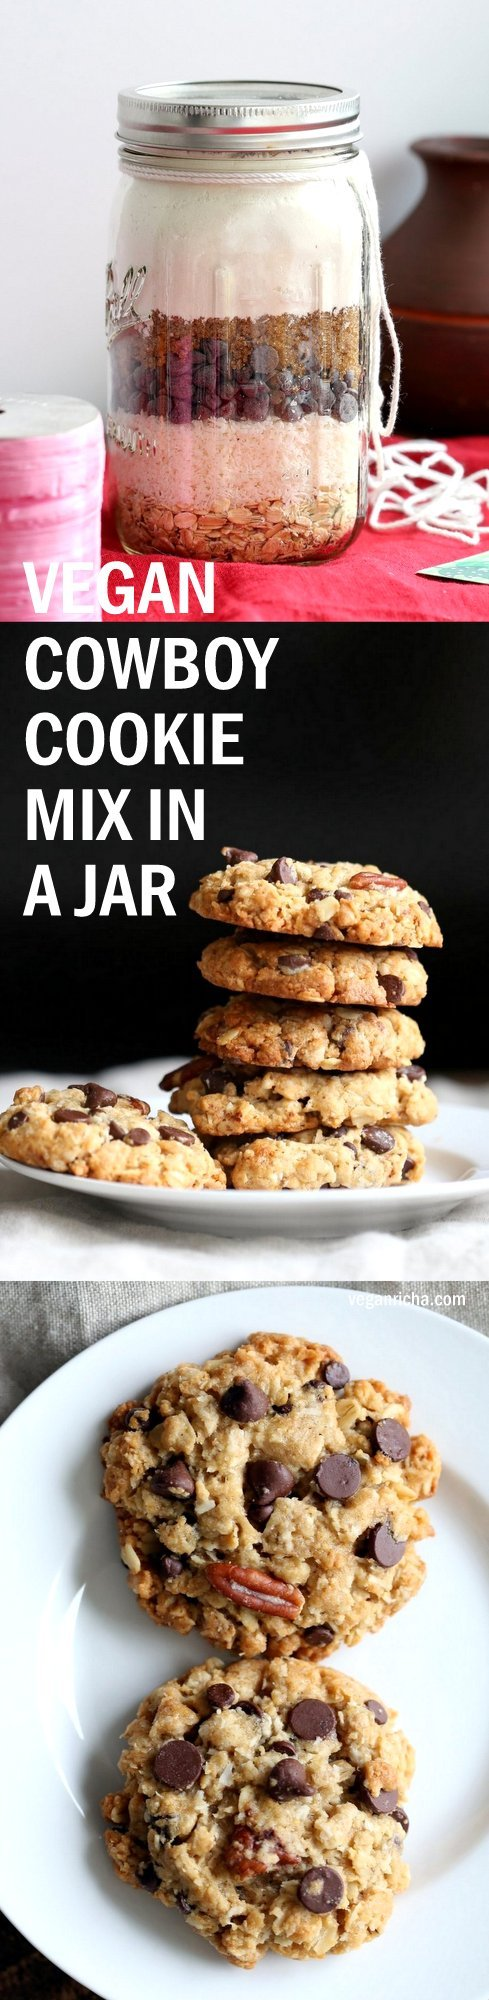 Vegan Cowboy Cookies Mix makes great Jar gifts for the Holiday Season. 1 Bowl Coconut Oatmeal Pecan Chocolate Chip Cookies. Layer oats, flour, coconut, chocolate sugar and pecans. Mix, add applesauce and oil, and bake. #veganricha #Vegan #Recipe Can be #glutenfree | VeganRicha.com